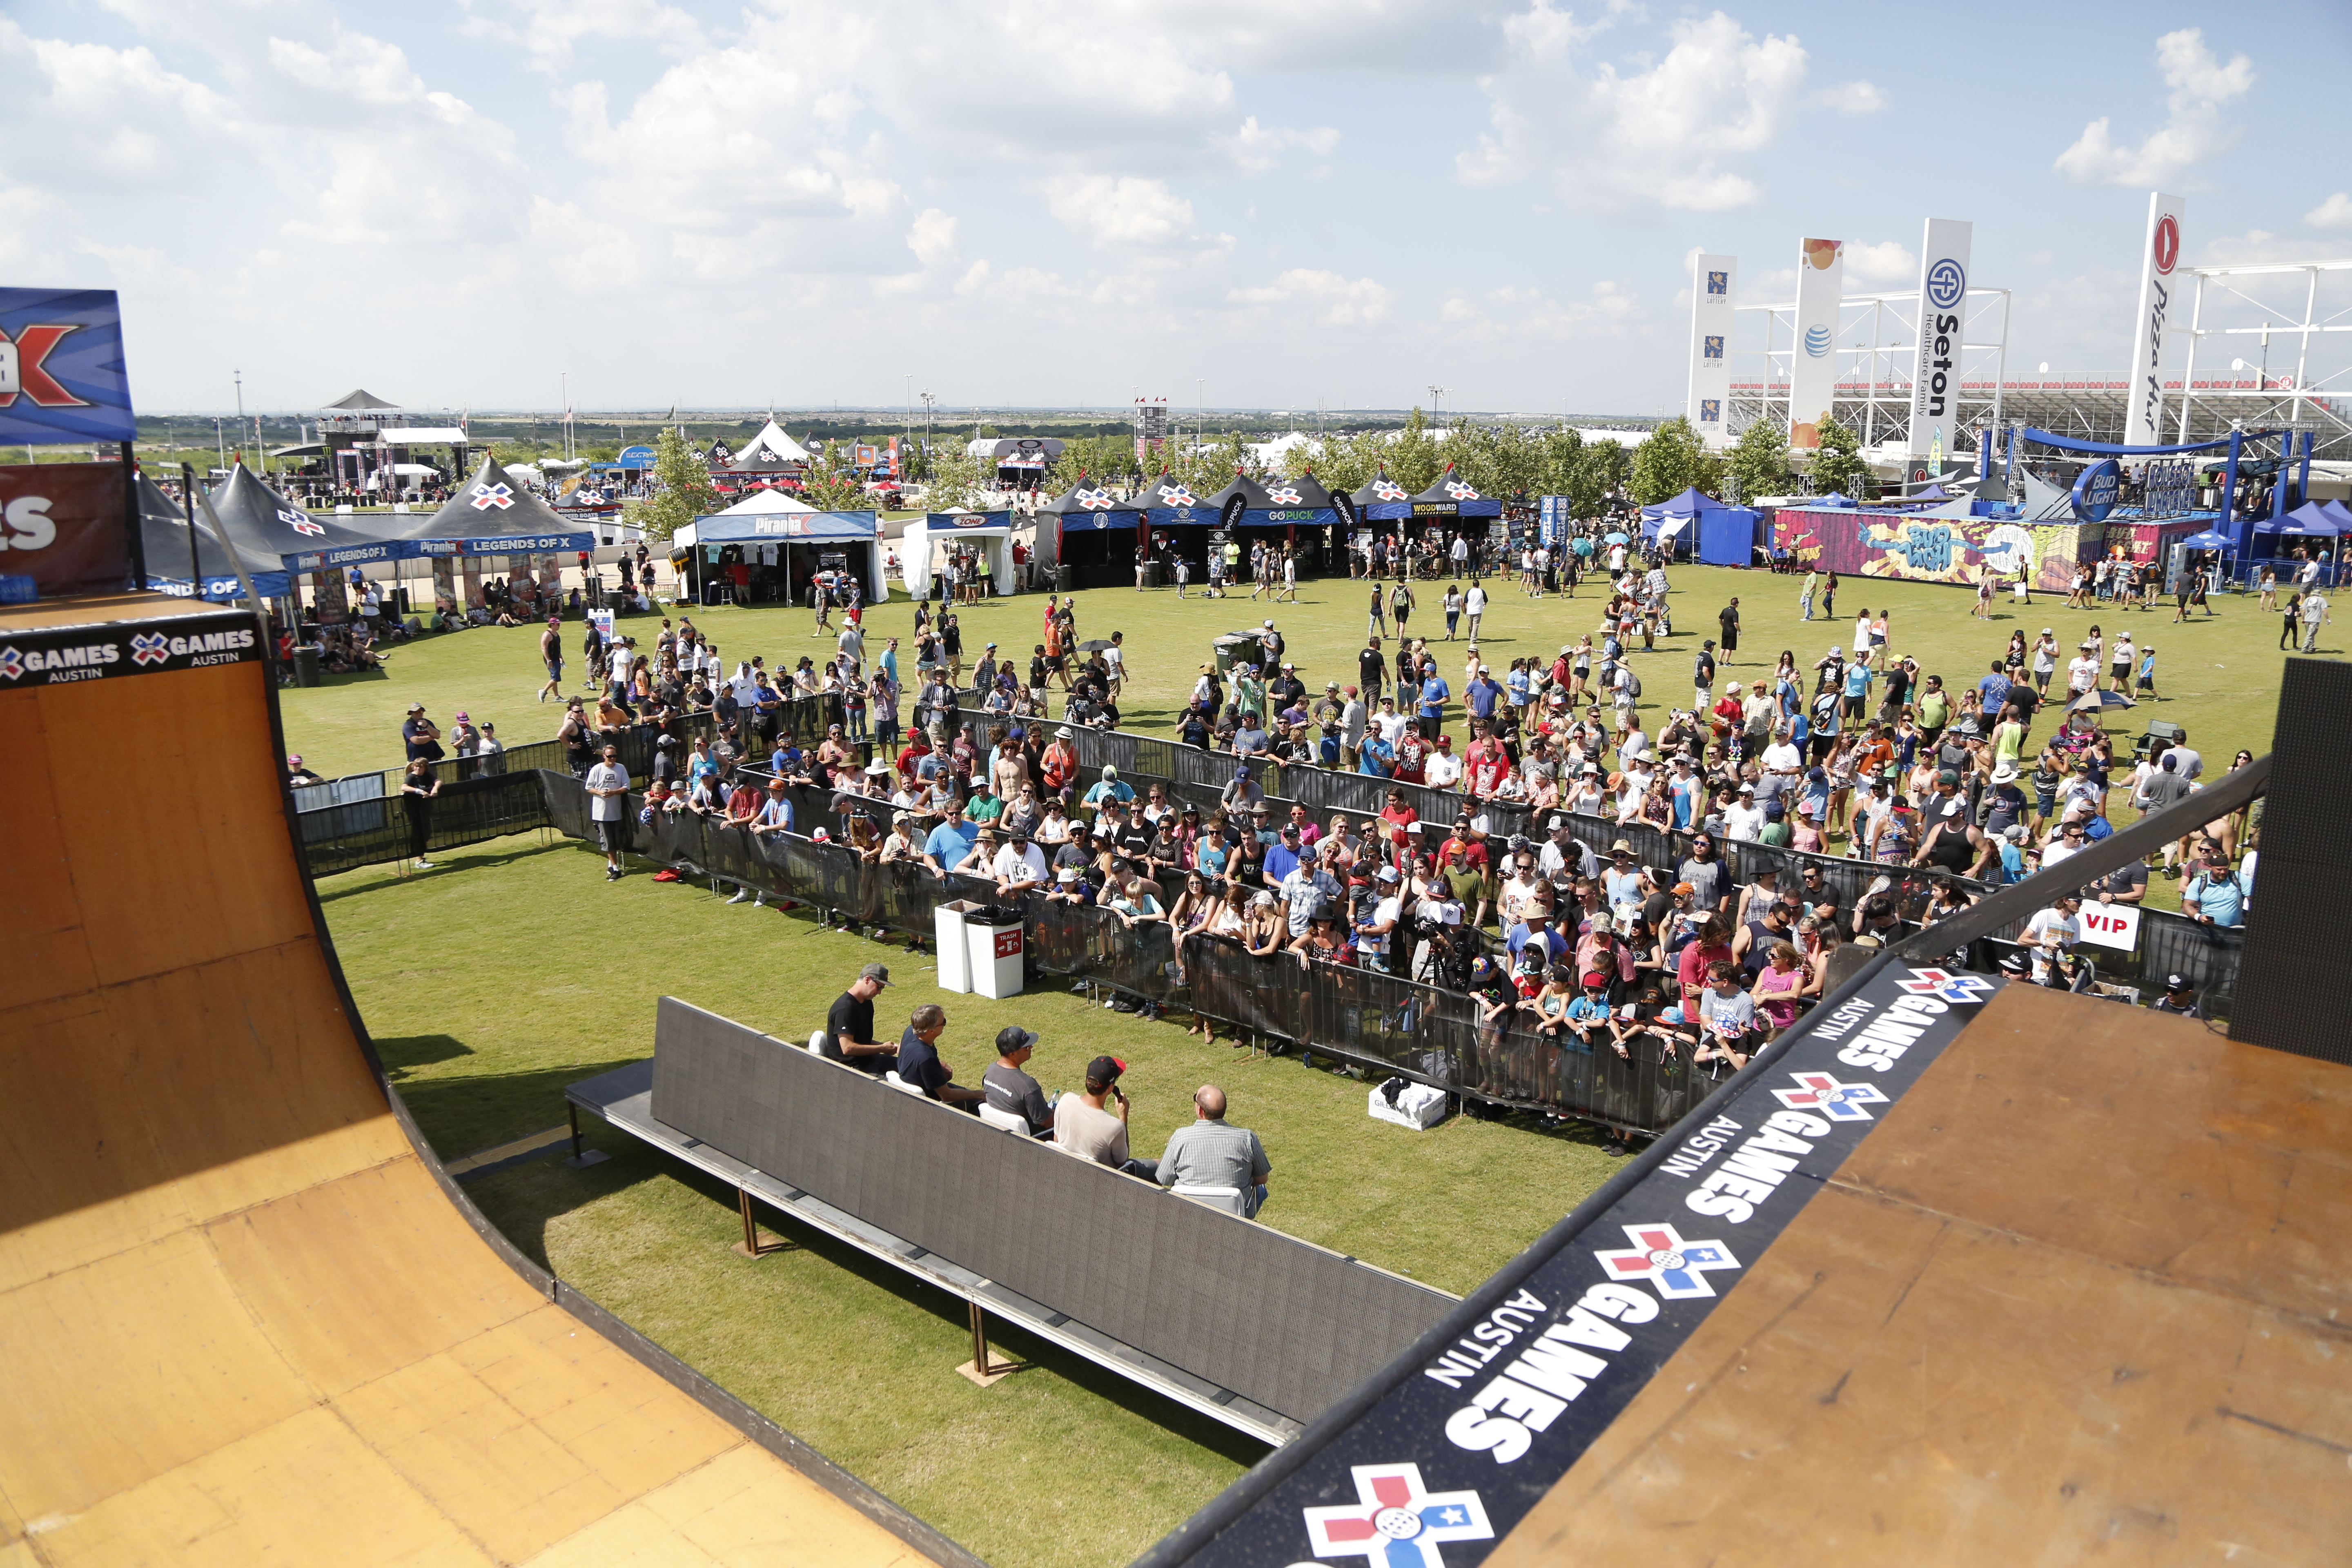 Aerial view of crowd at X Games vert ramp for Innoskate panel featuring Tony Hawk and Bob Burnquist